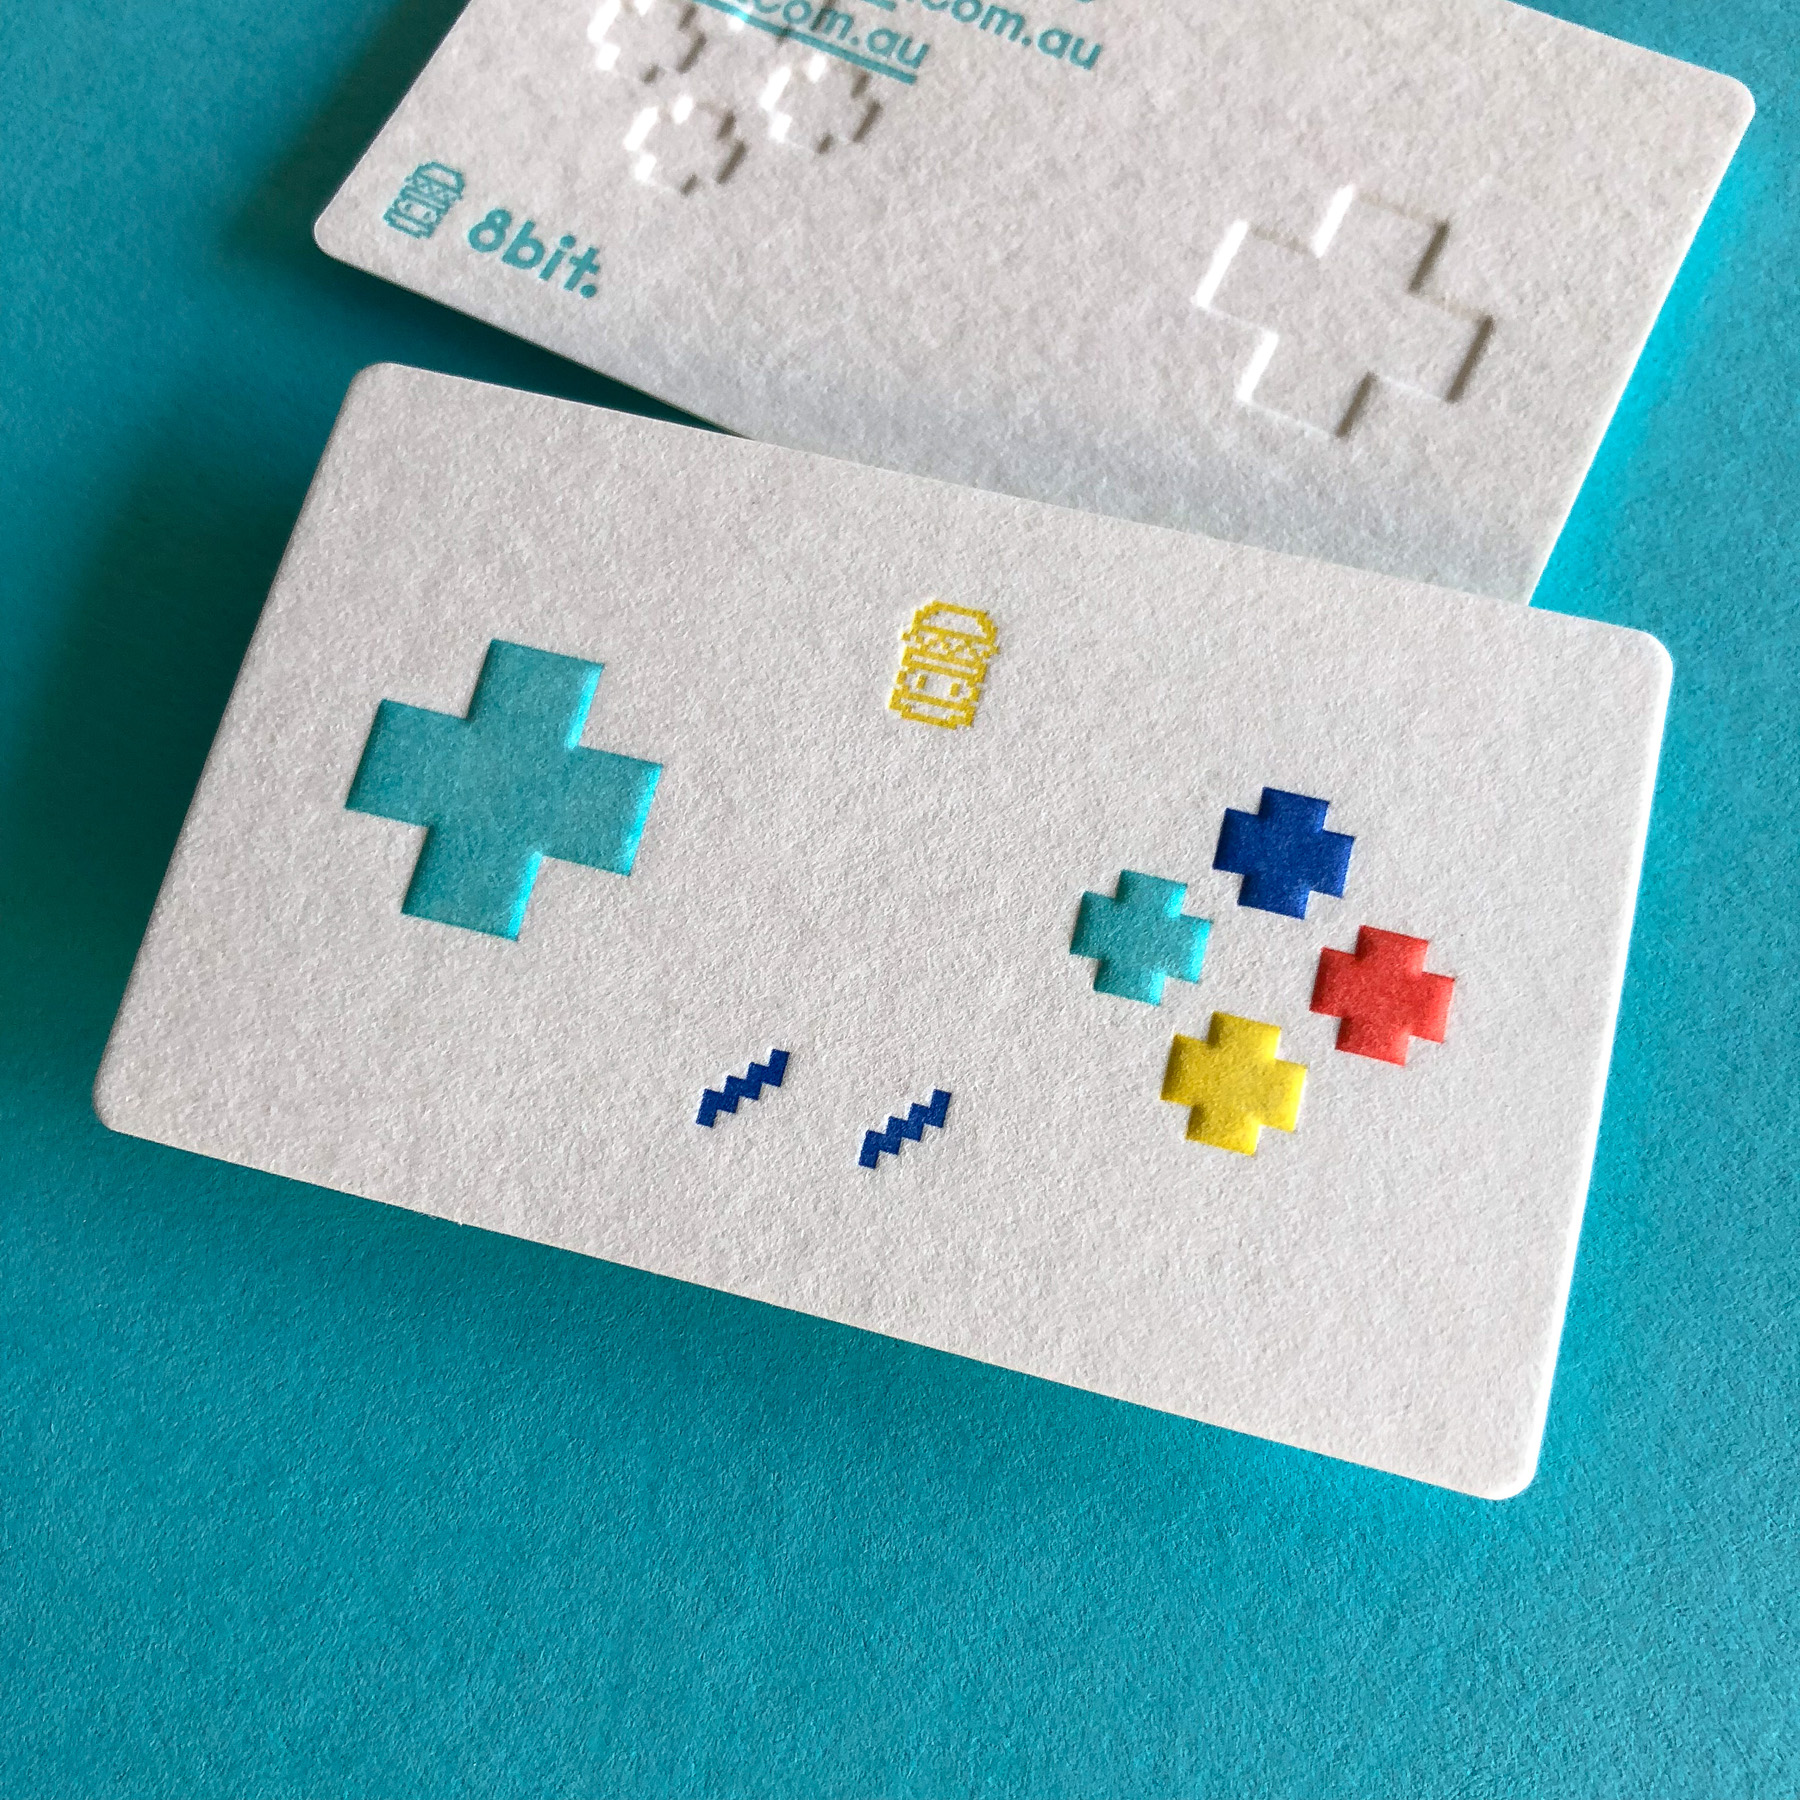 Unique letterpress embossed business cards for 8 Bit Burger on Wild